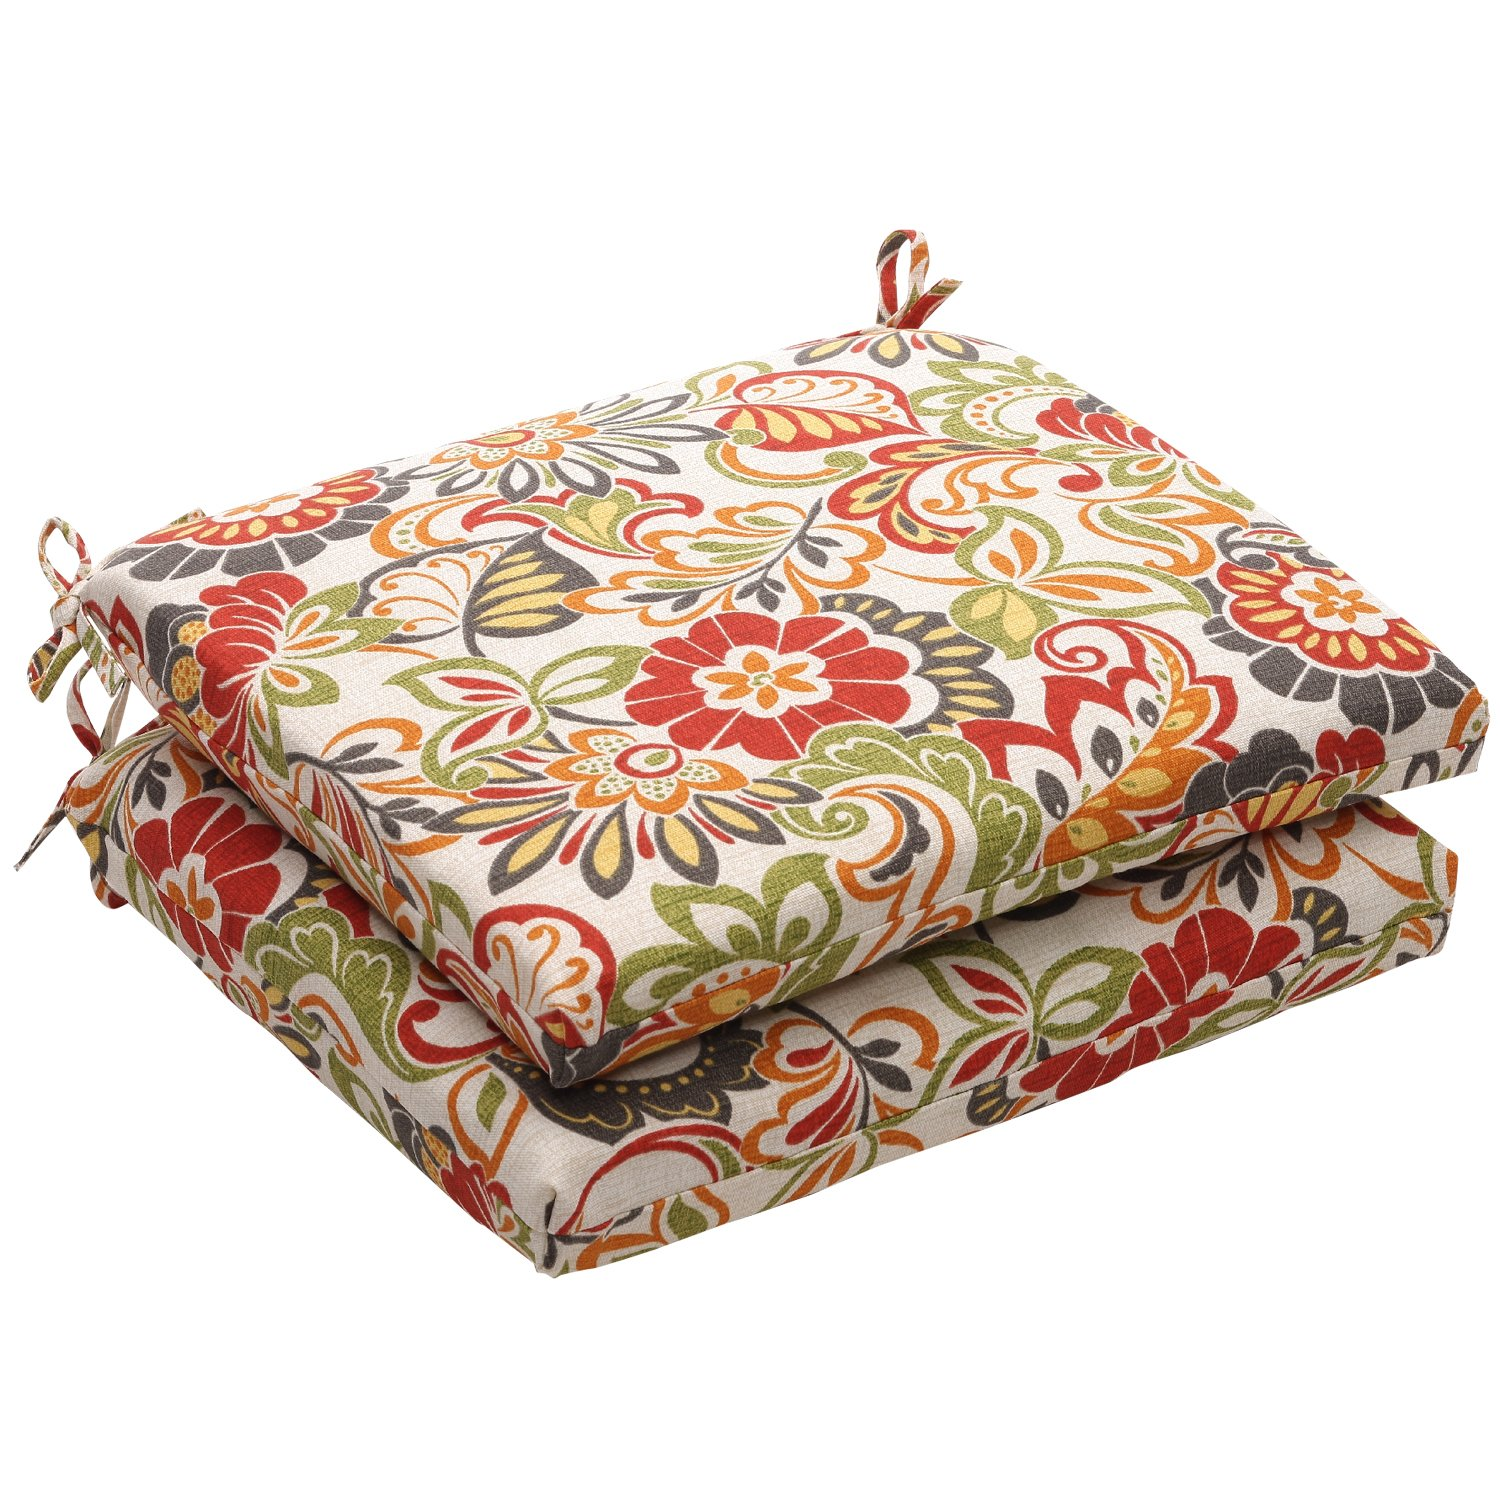 Pillow Perfect Zoe Citrus Squared Corners (Set of 2) Seat Cushion 2 Pack, 18.5 in. L X 16 in. W X 3 in. D, Multicolored by Pillow Perfect